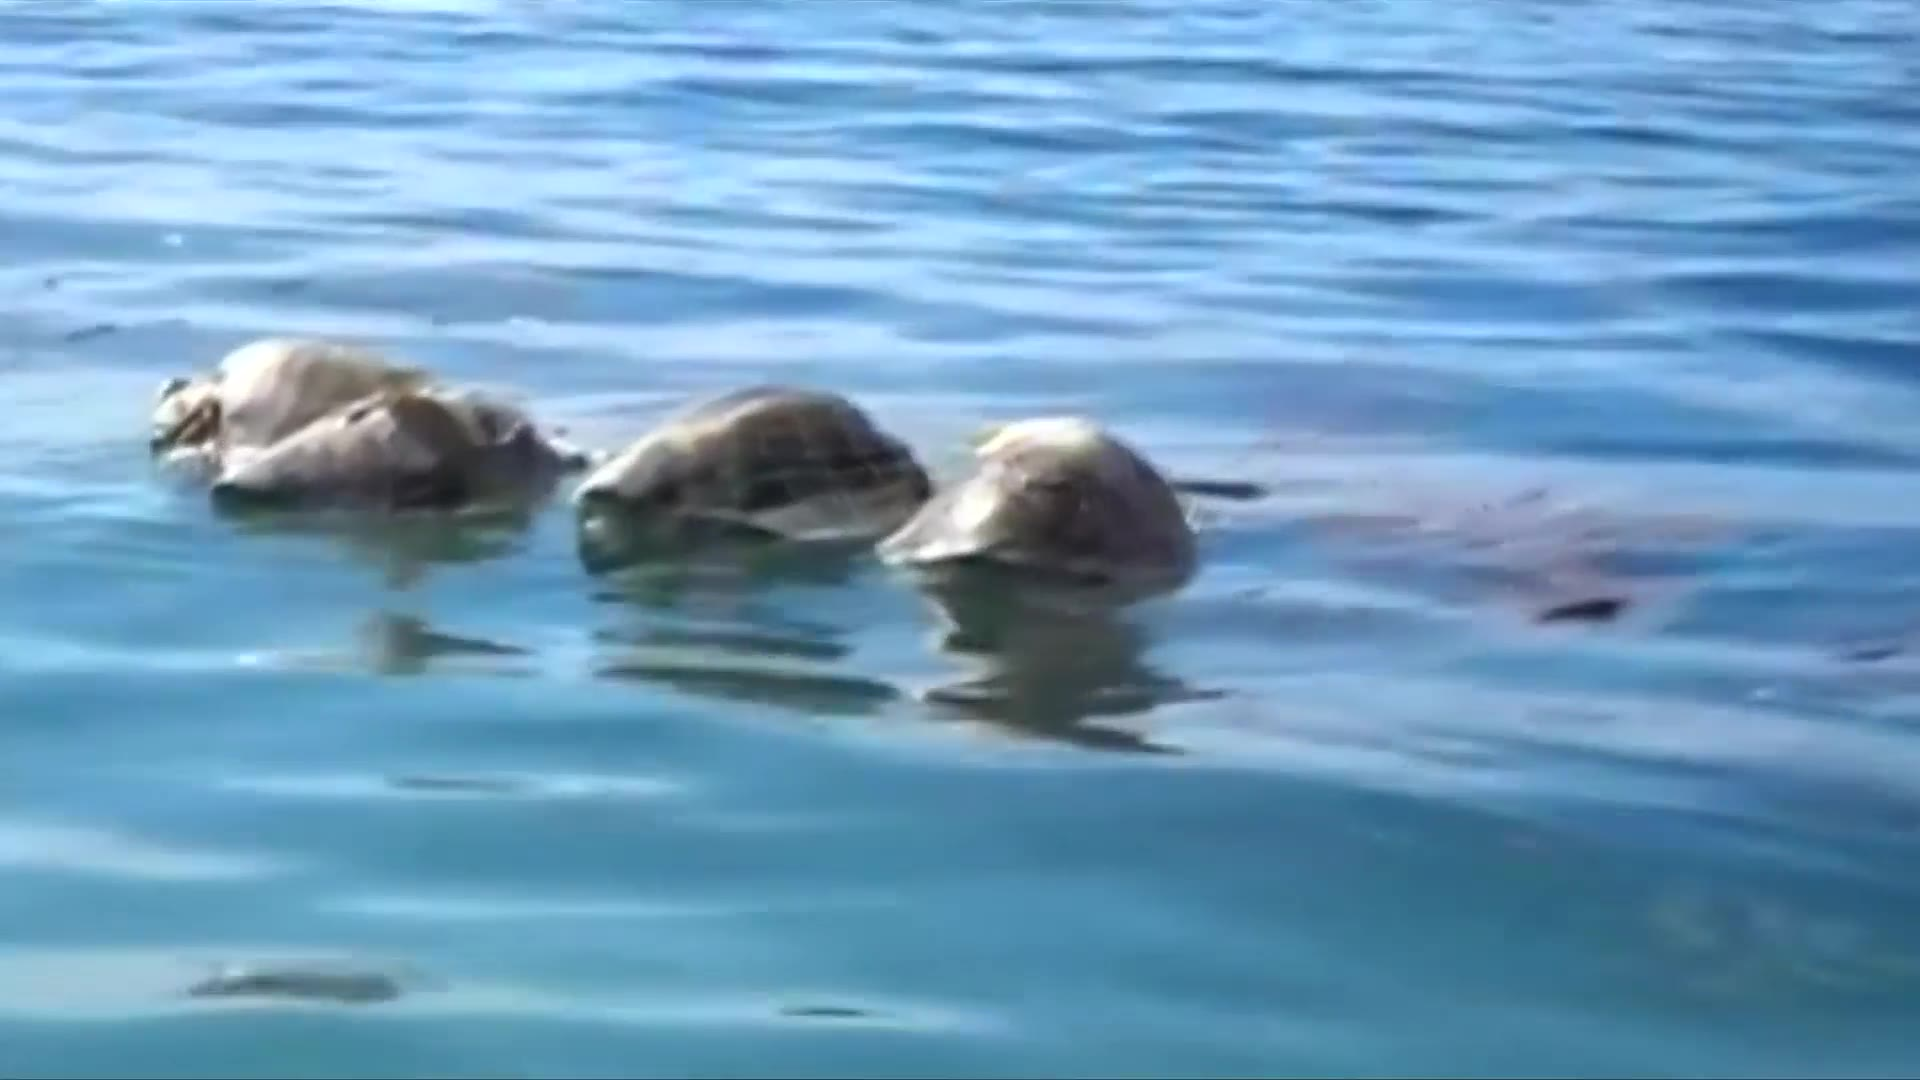 Video: Around 300 endangered sea turtles killed in southern Mexico